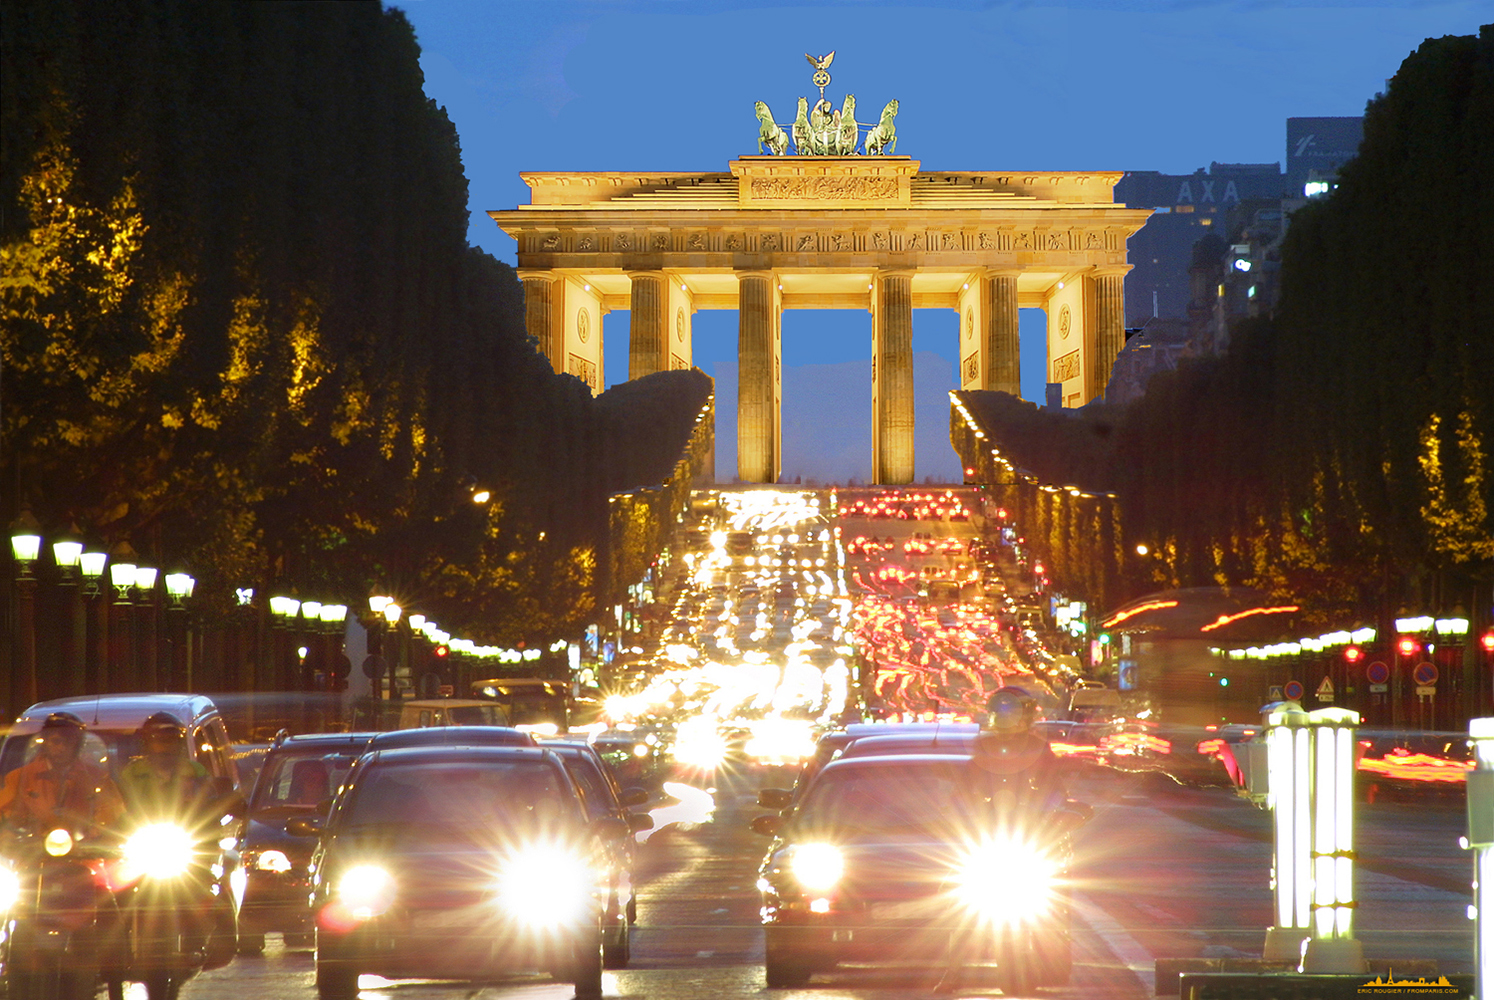 What if Brandenburg gate were in Paris